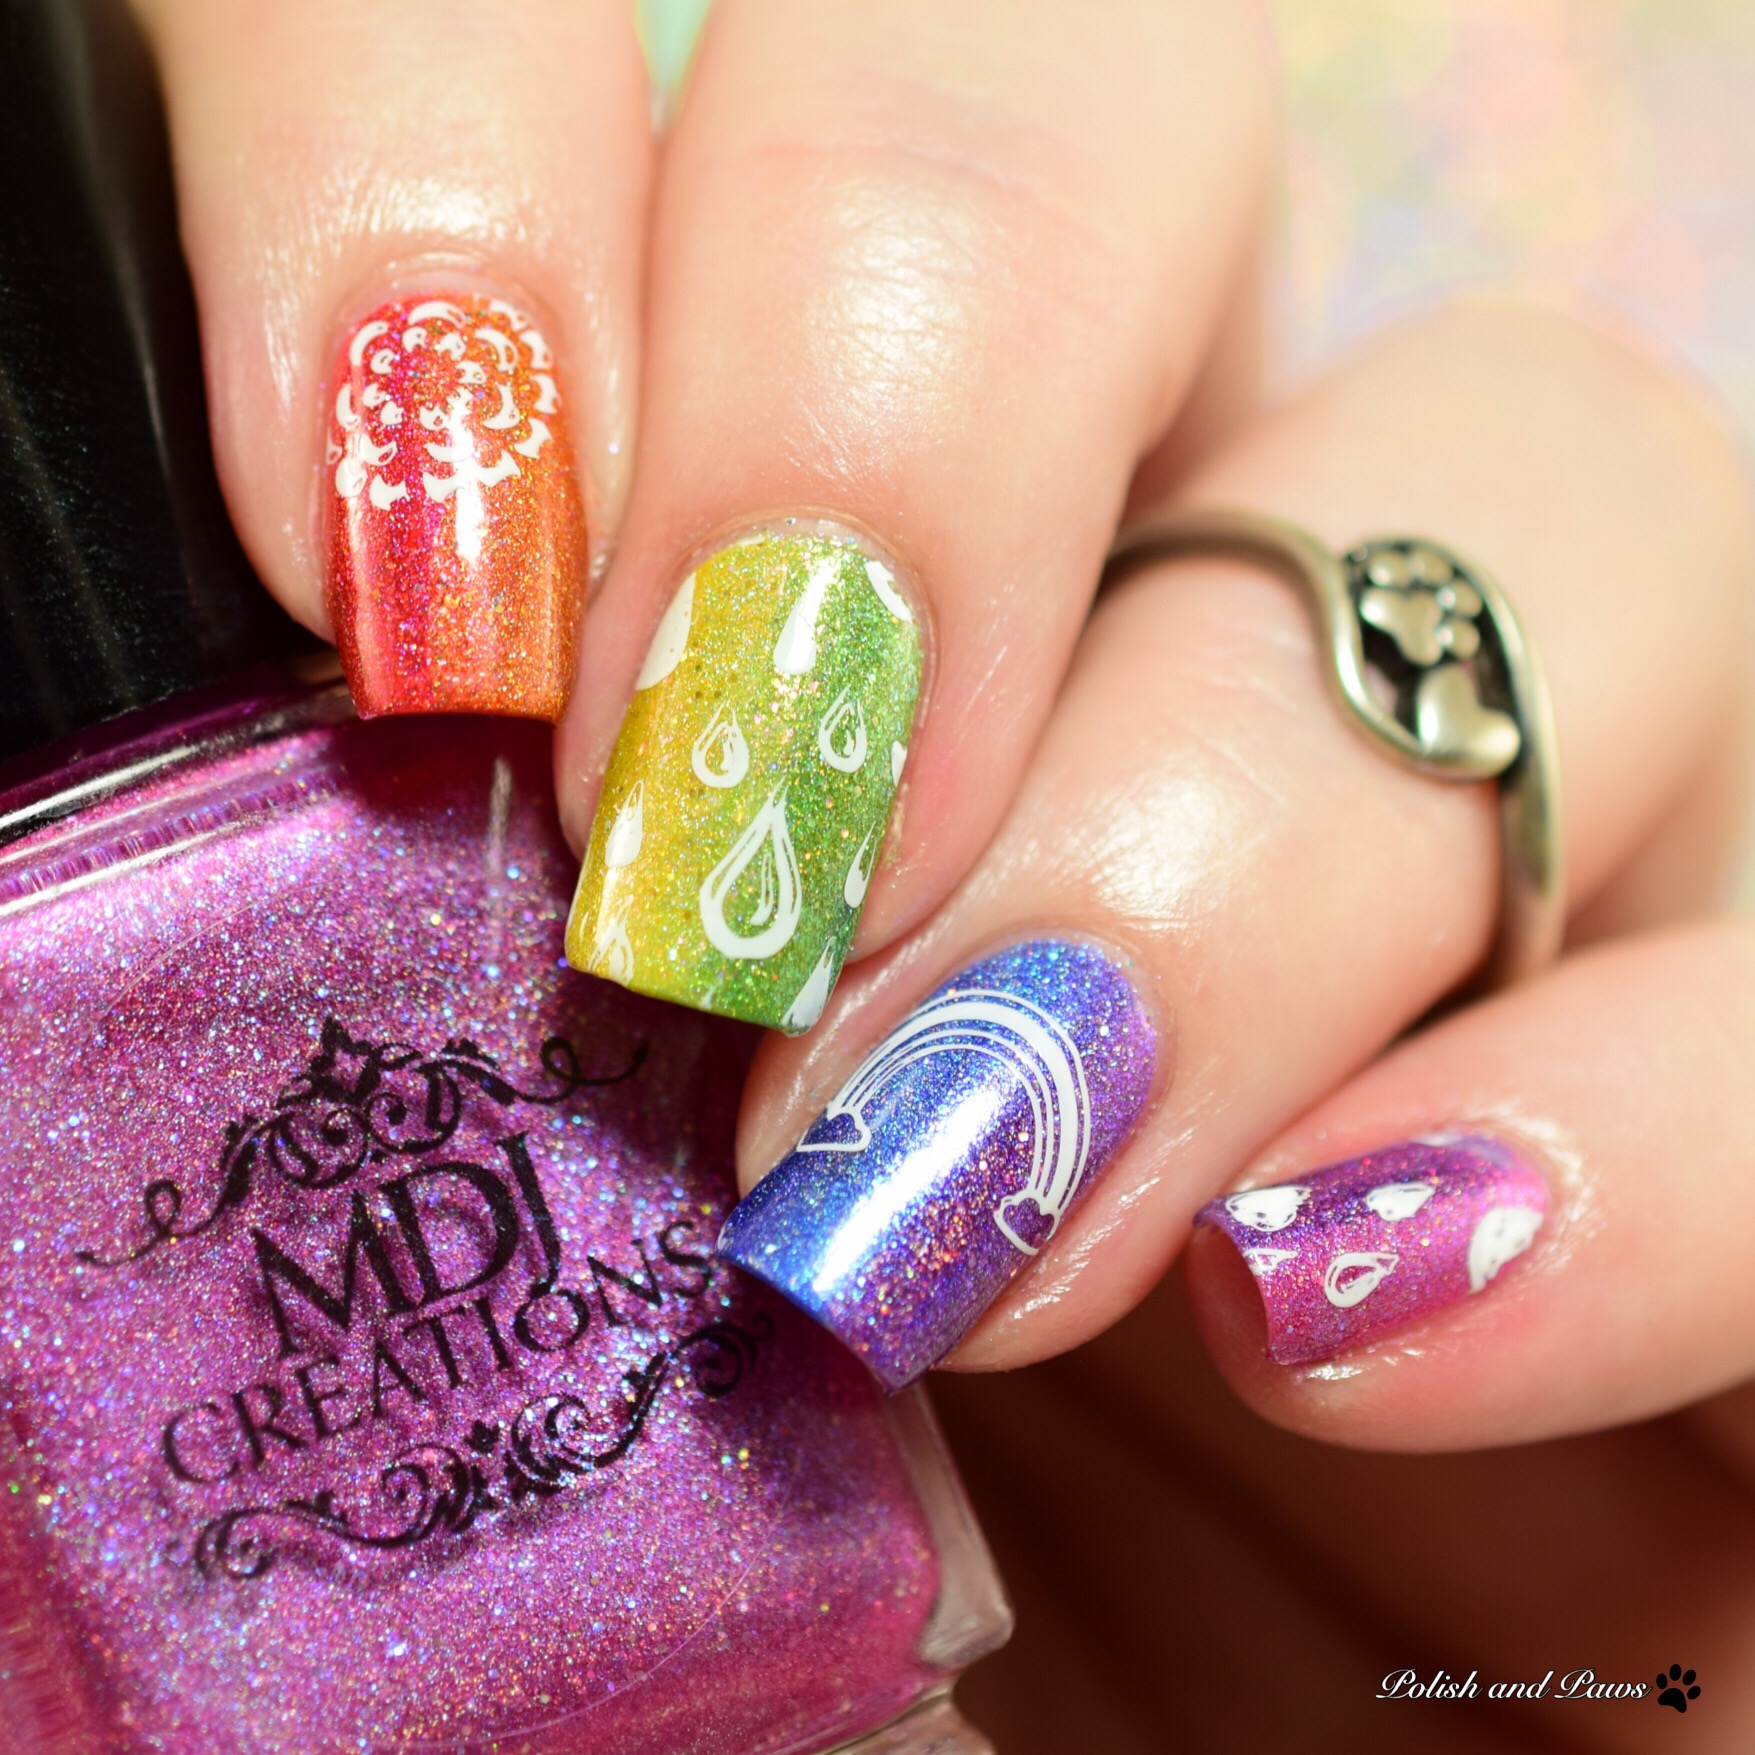 MDJ Creations Roy G. Biv Nail Art